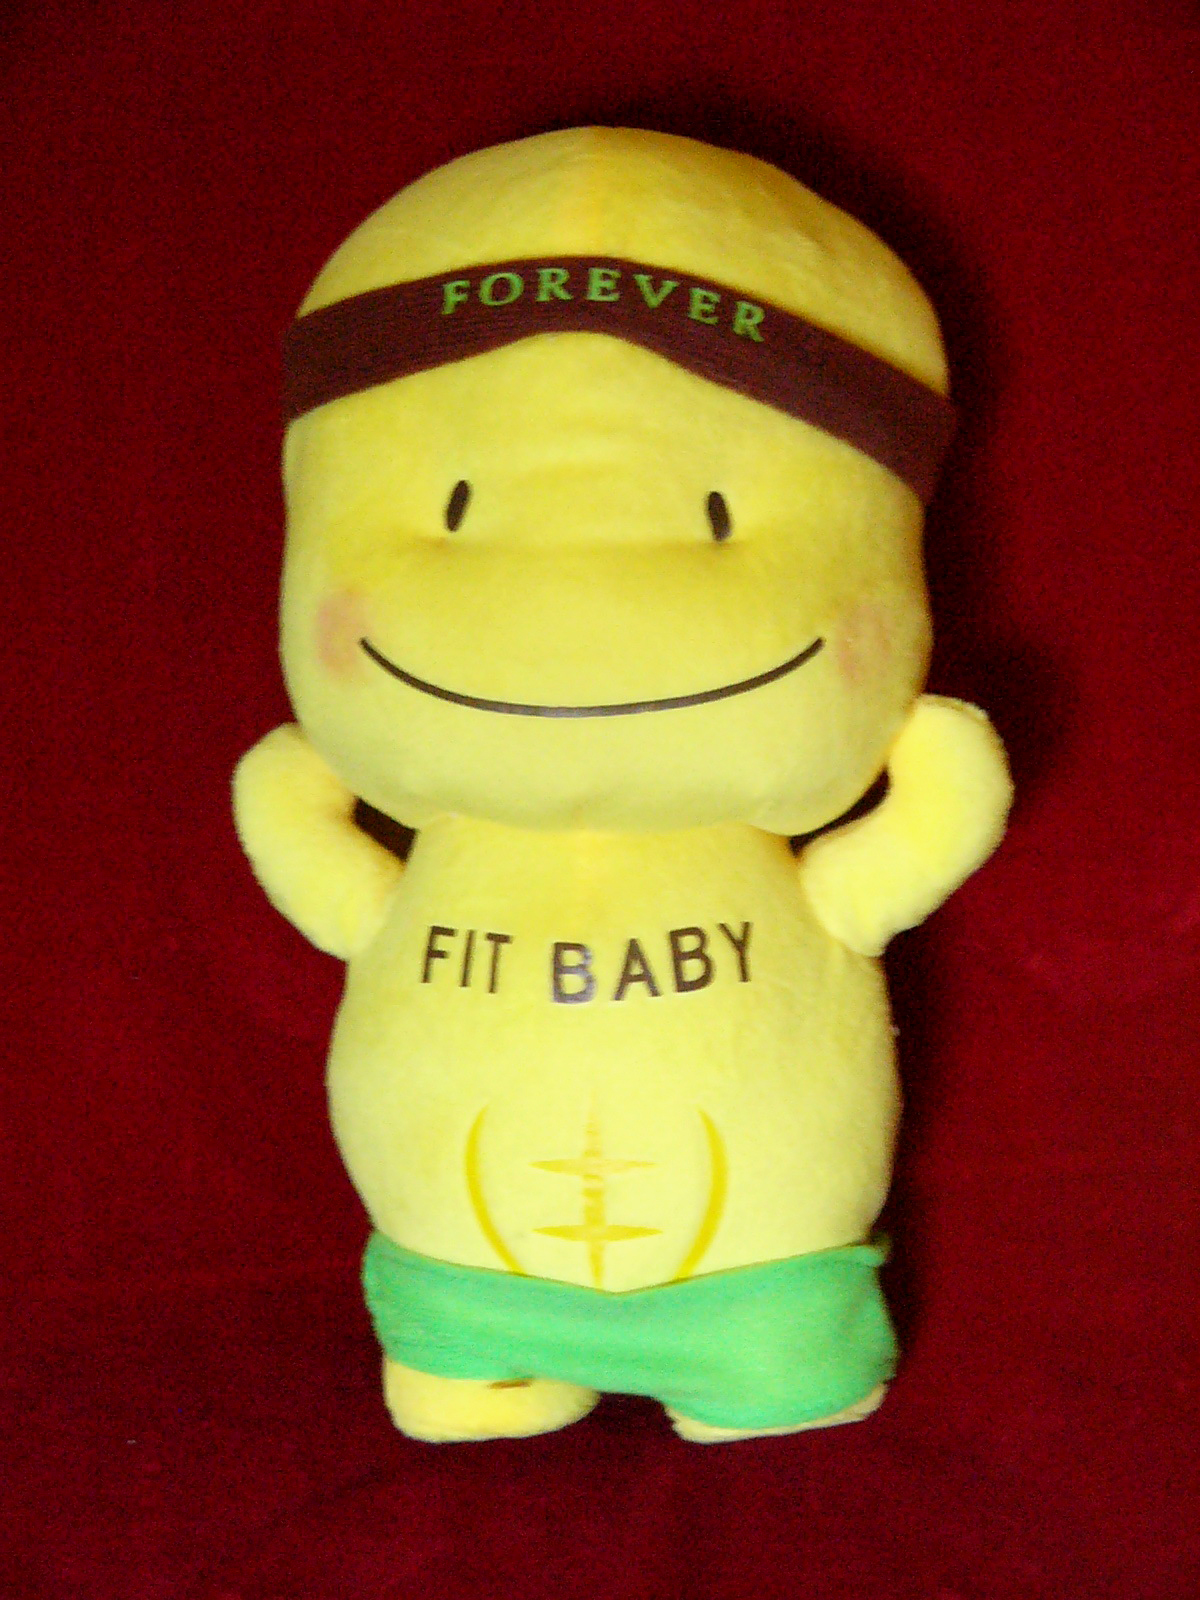 Forever Fit Baby